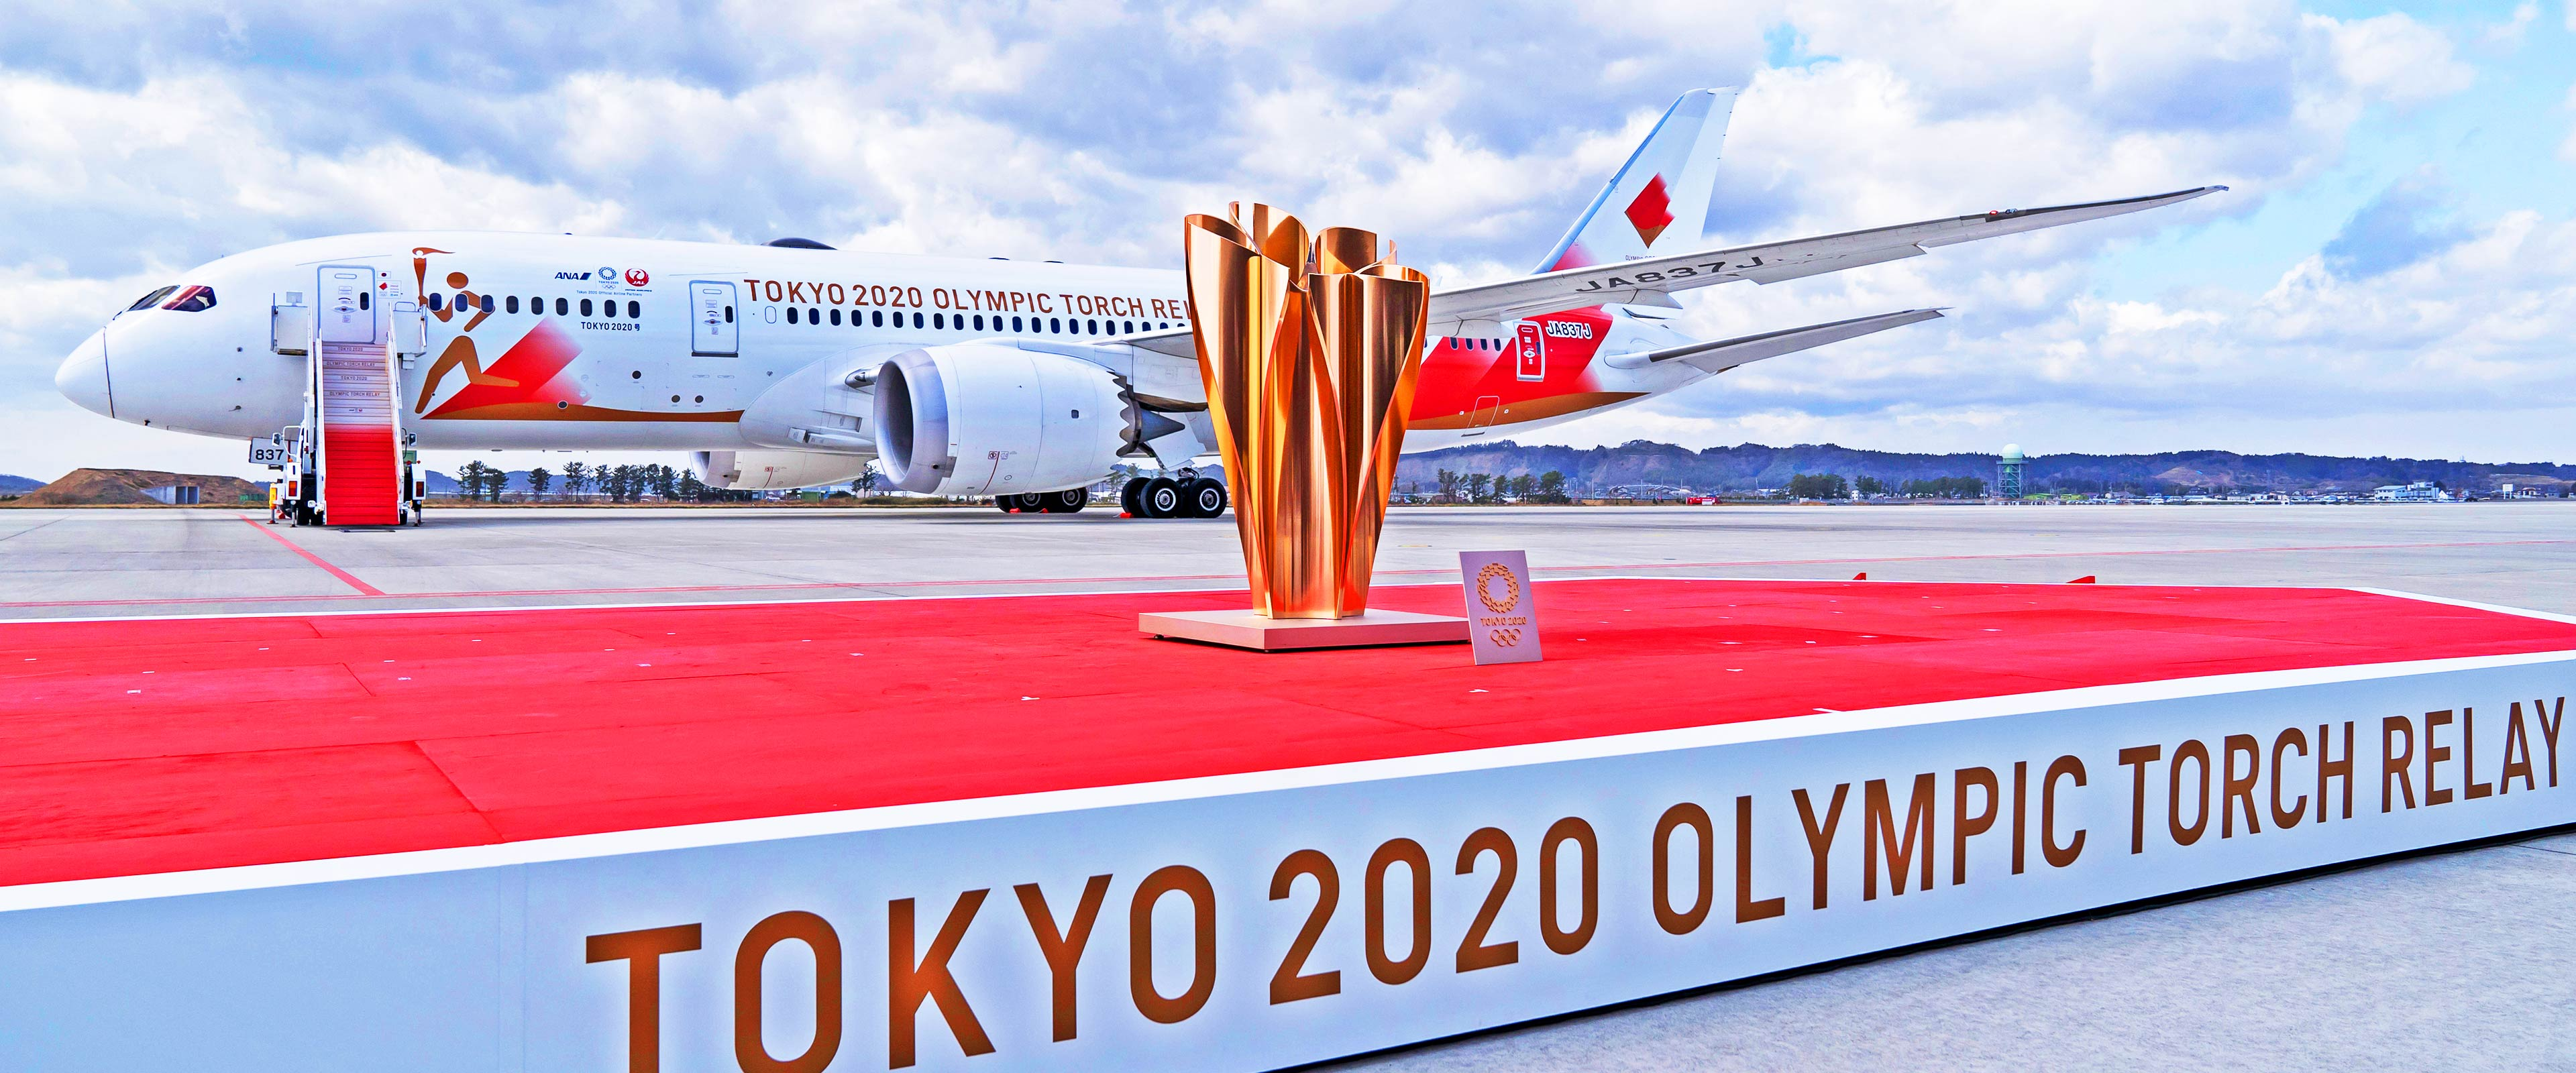 Tokyo 2020 Olympic Flame Arrives In Japan